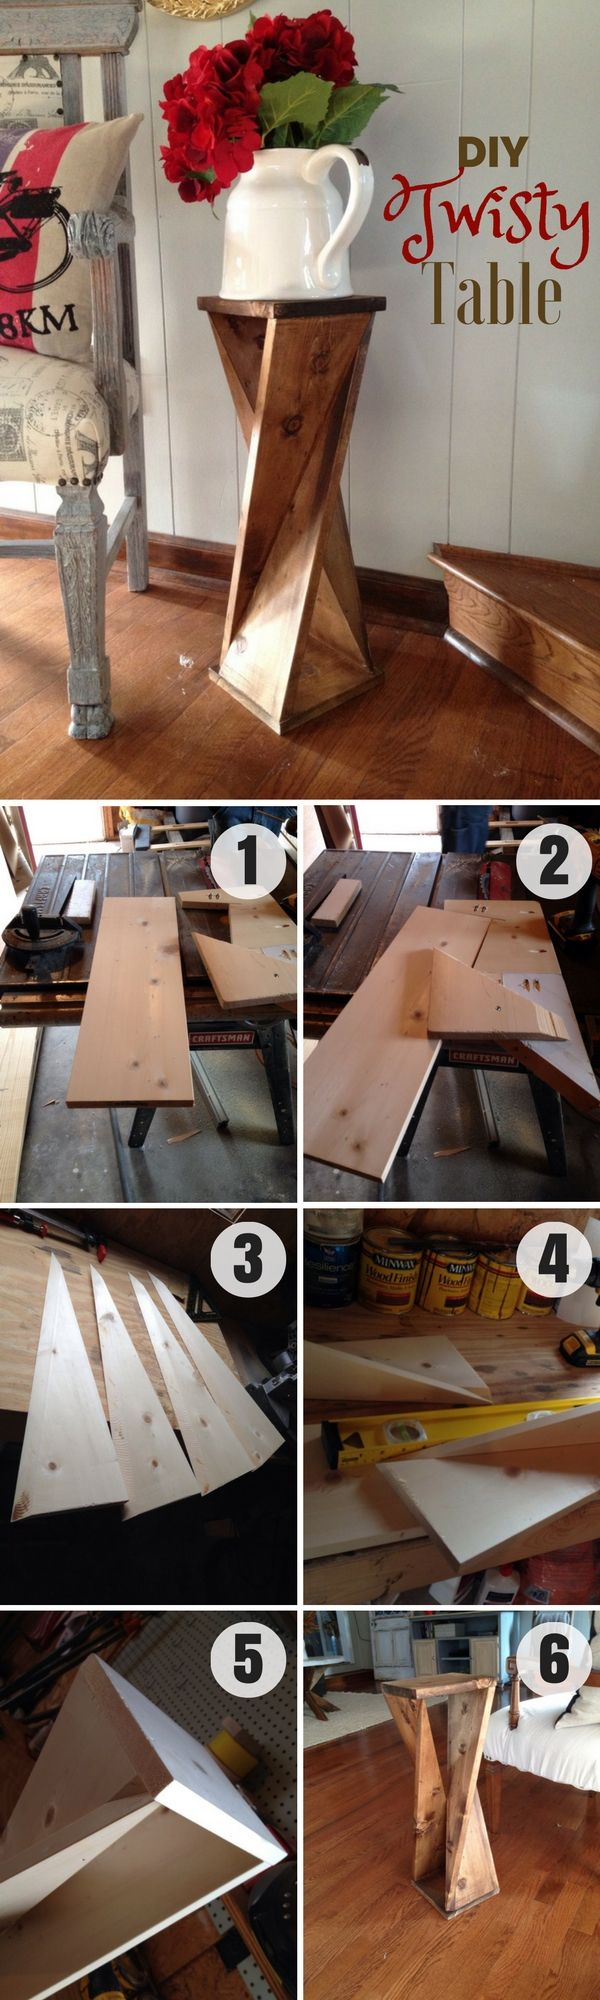 Best 25+ Wood projects ideas on Pinterest | Rustic wood, Stain colors and  Pallet